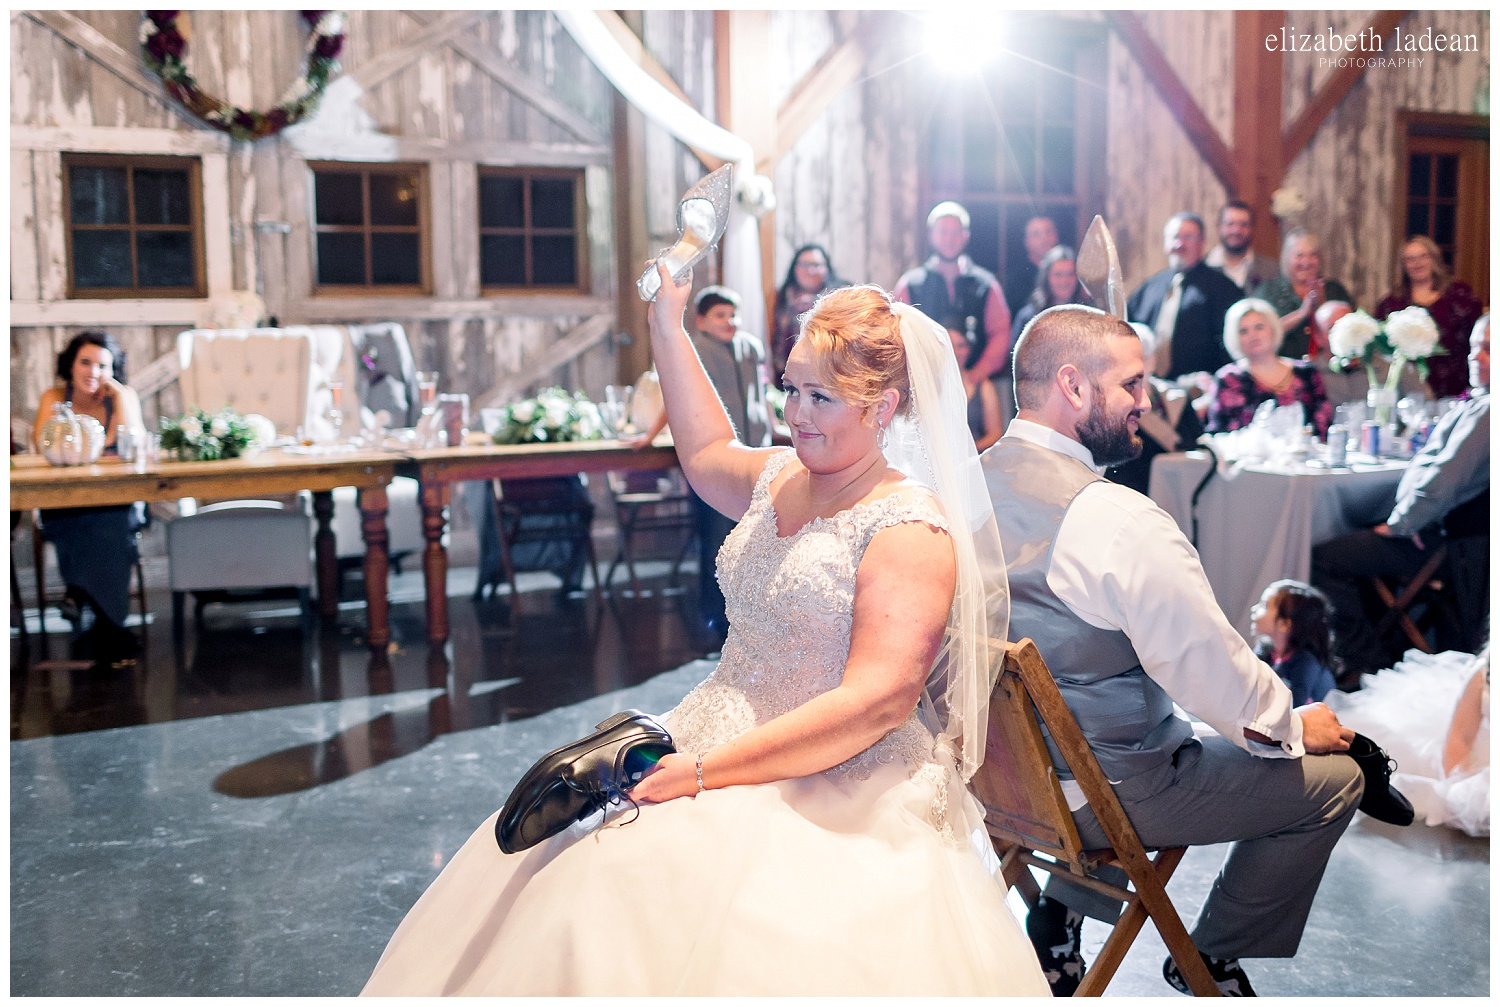 Weston-Timber-Barn-Wedding-Photography-L+A-elizabeth-ladean0photo_1918.jpg